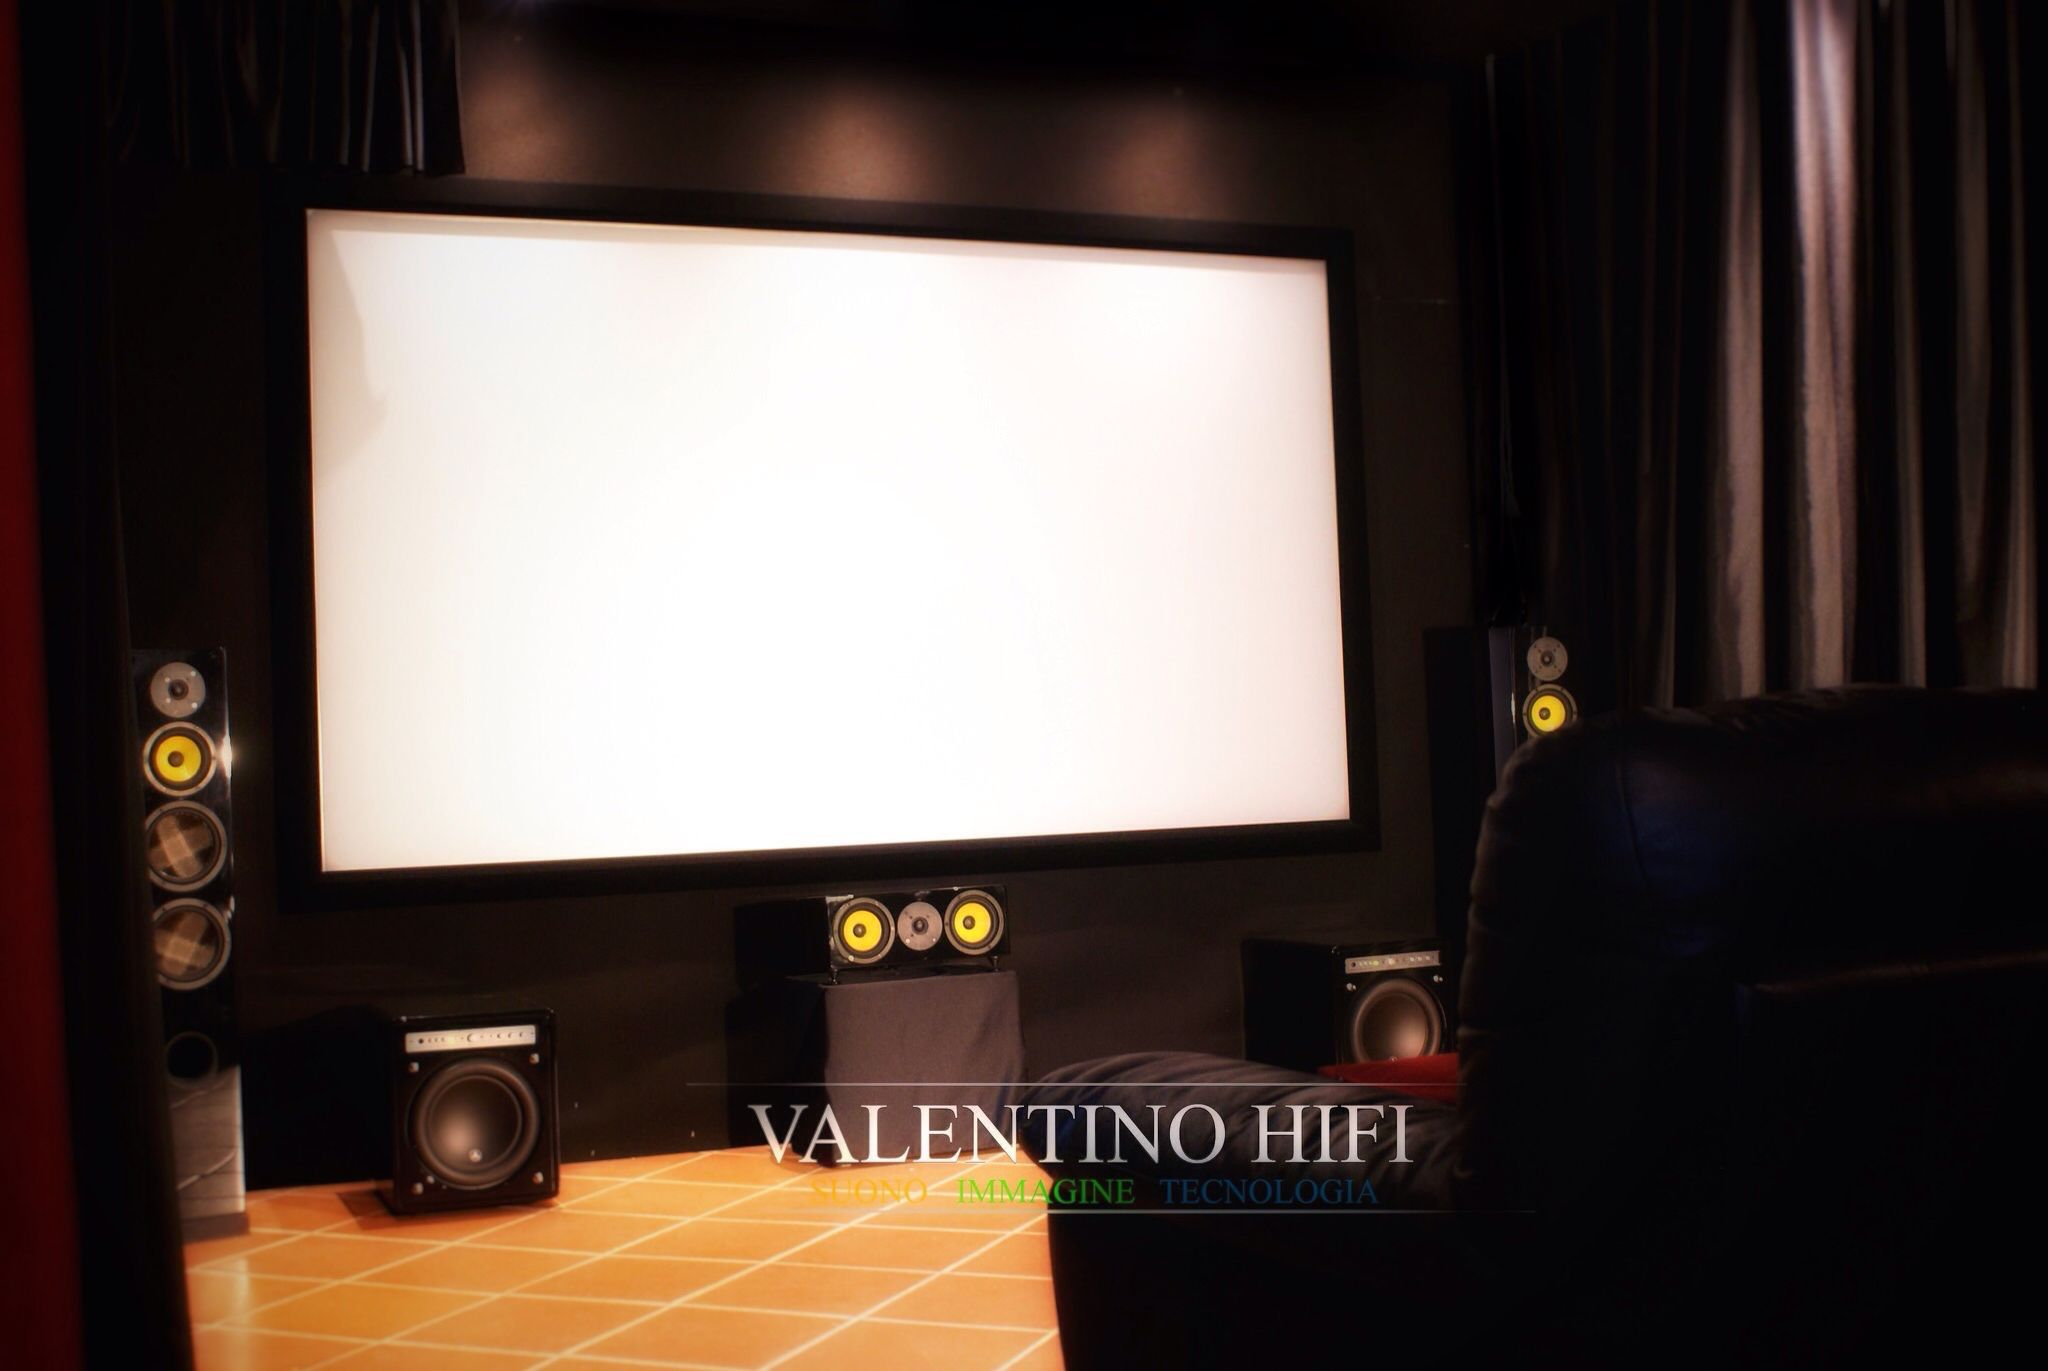 Home Theater Speakers Placed Behind Acoustically Transparent Screen - Cedia